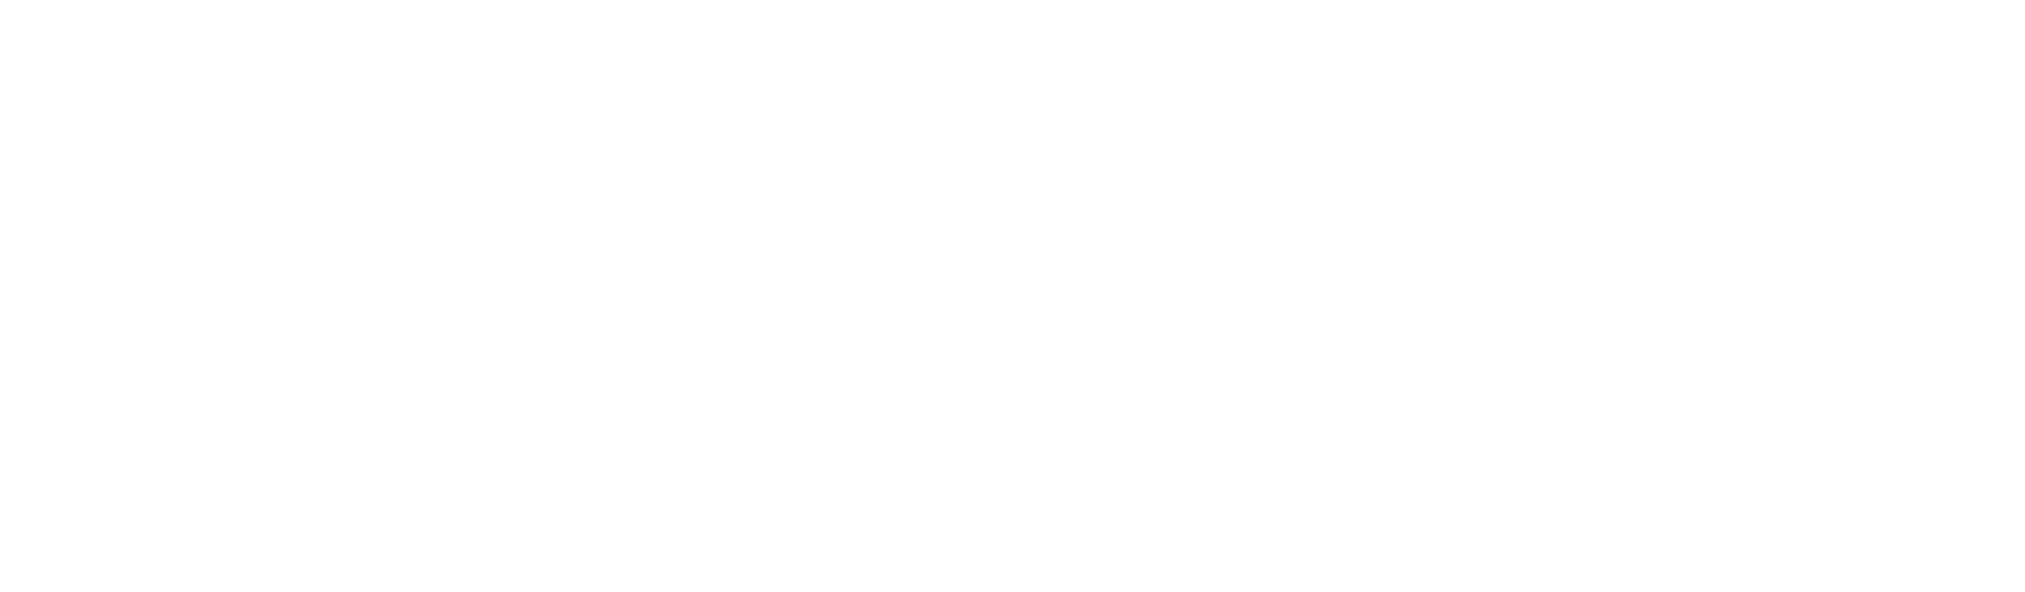 creekside village apartments fremont logo white